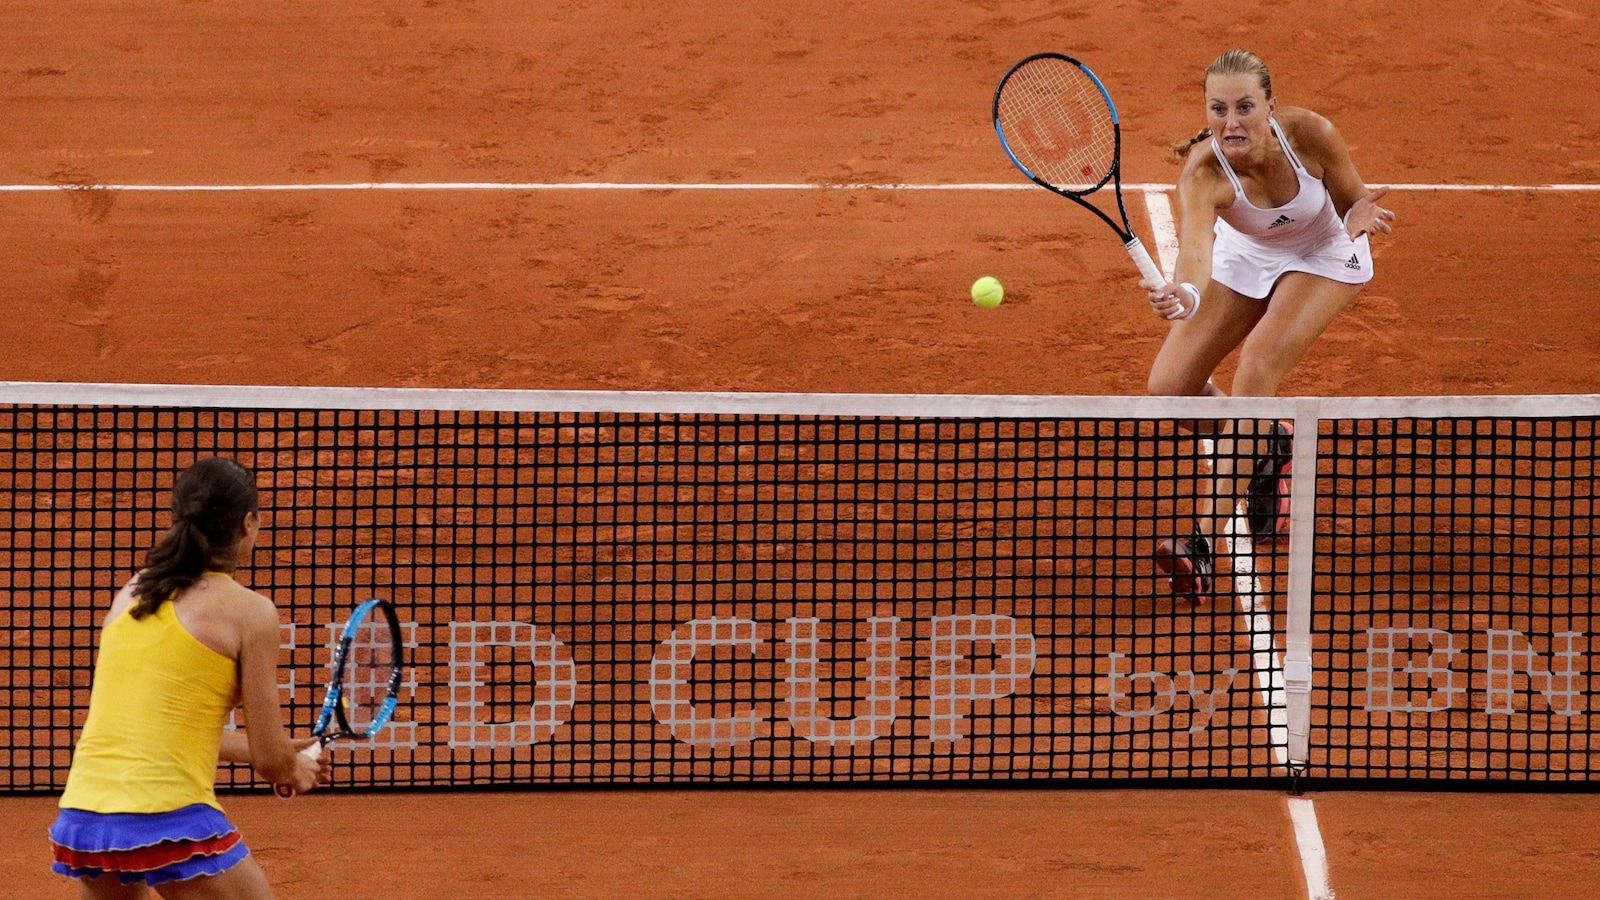 La Fed Cup change également de format - Fil Info - Fed Cup - Tennis